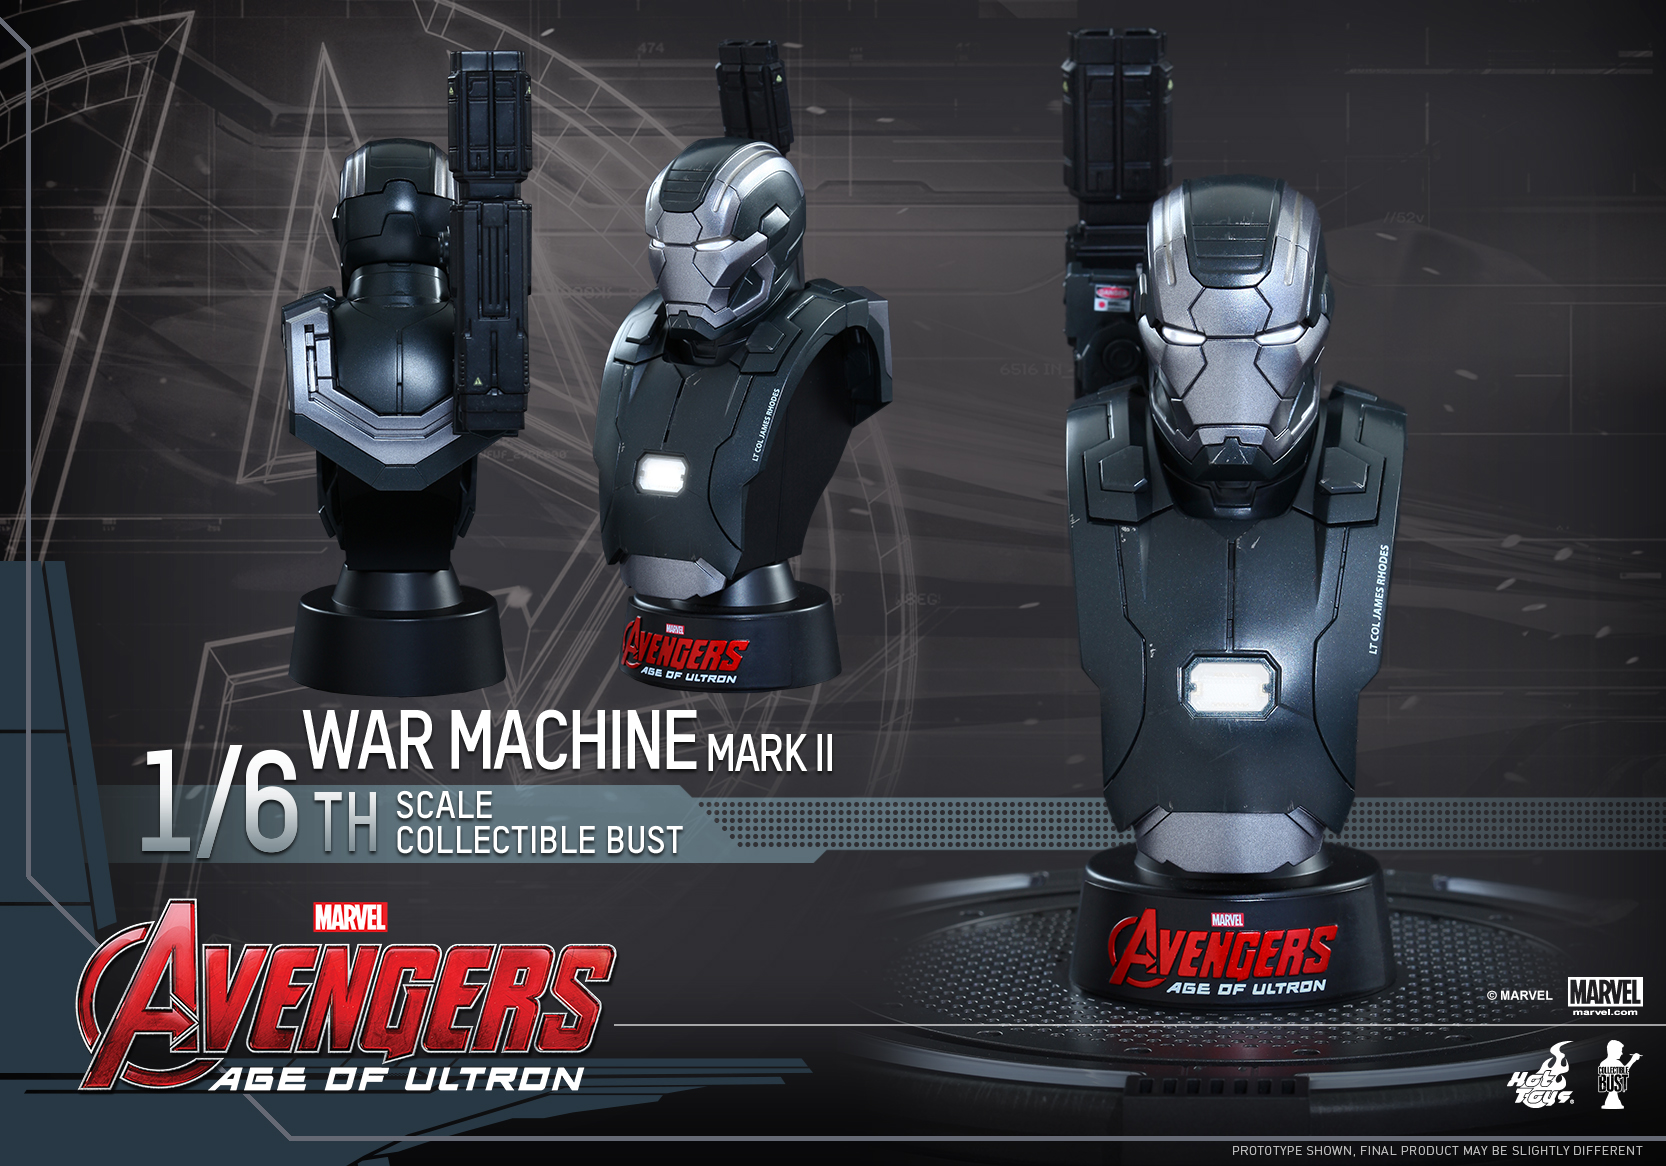 Image Hot Toys Avengers Age Of Ultron 1 6 War Machine Collectible Bust Pr1